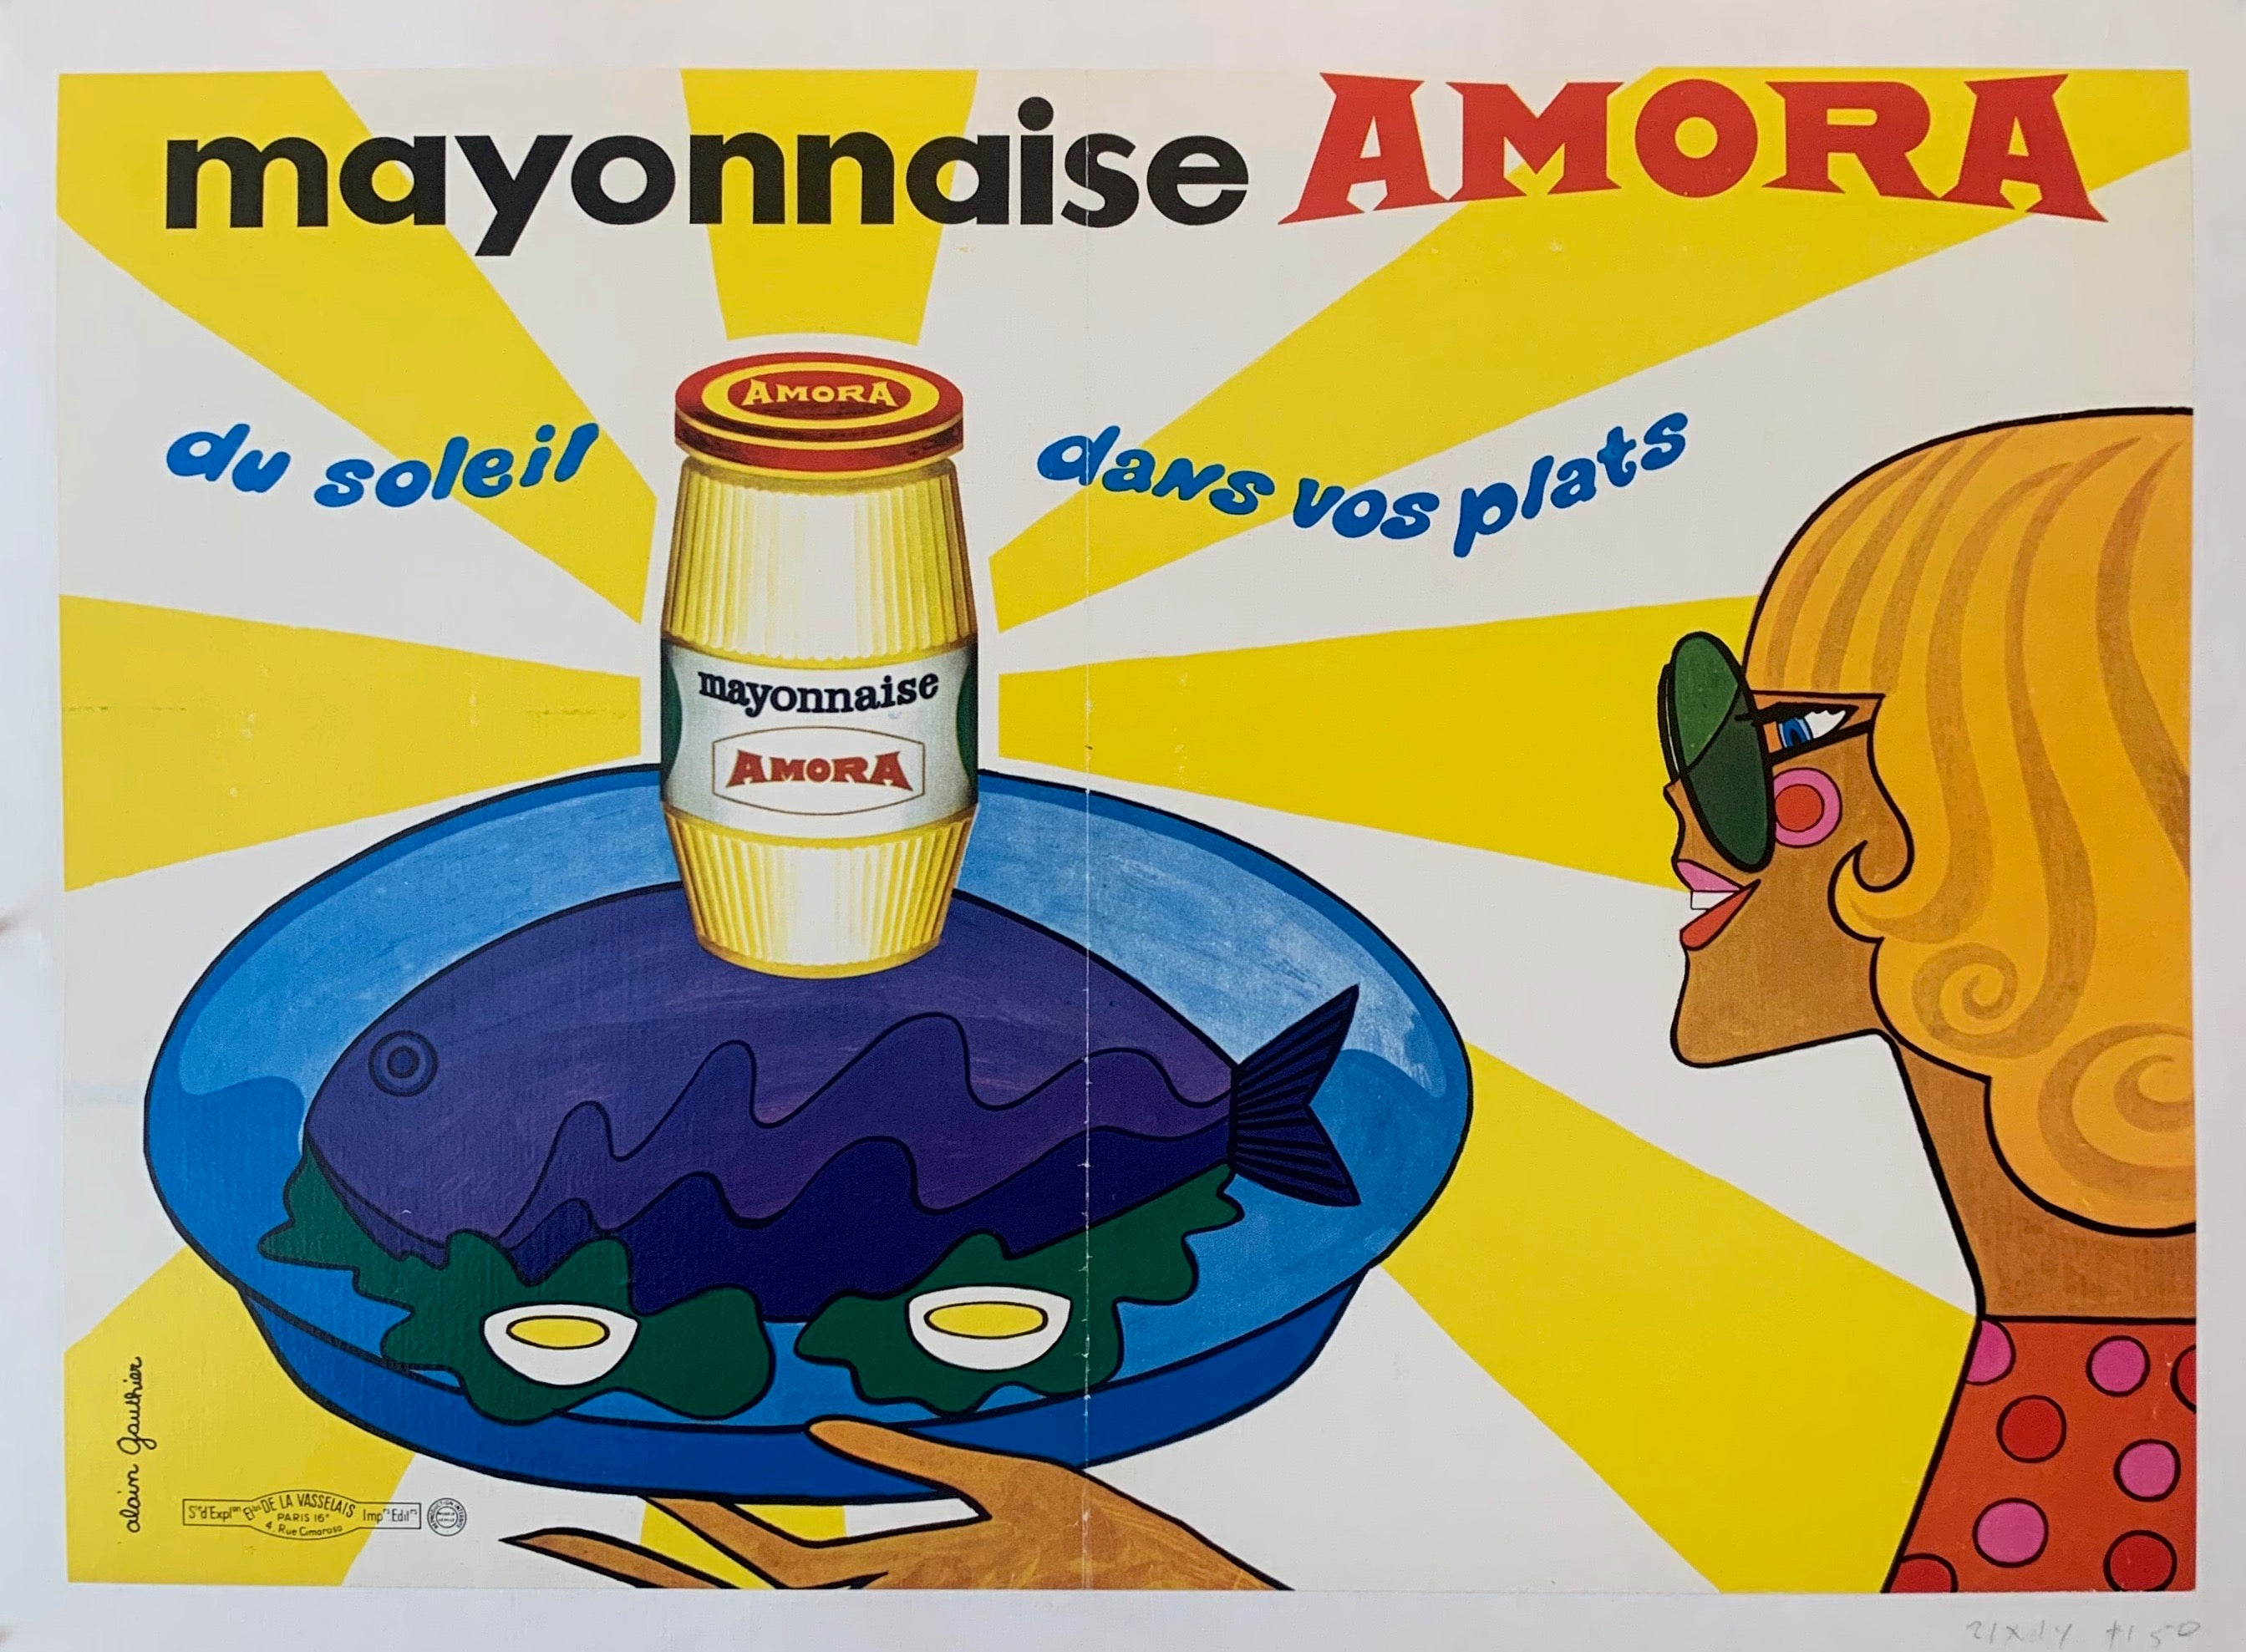 Mayonnaise Amora Advertisement